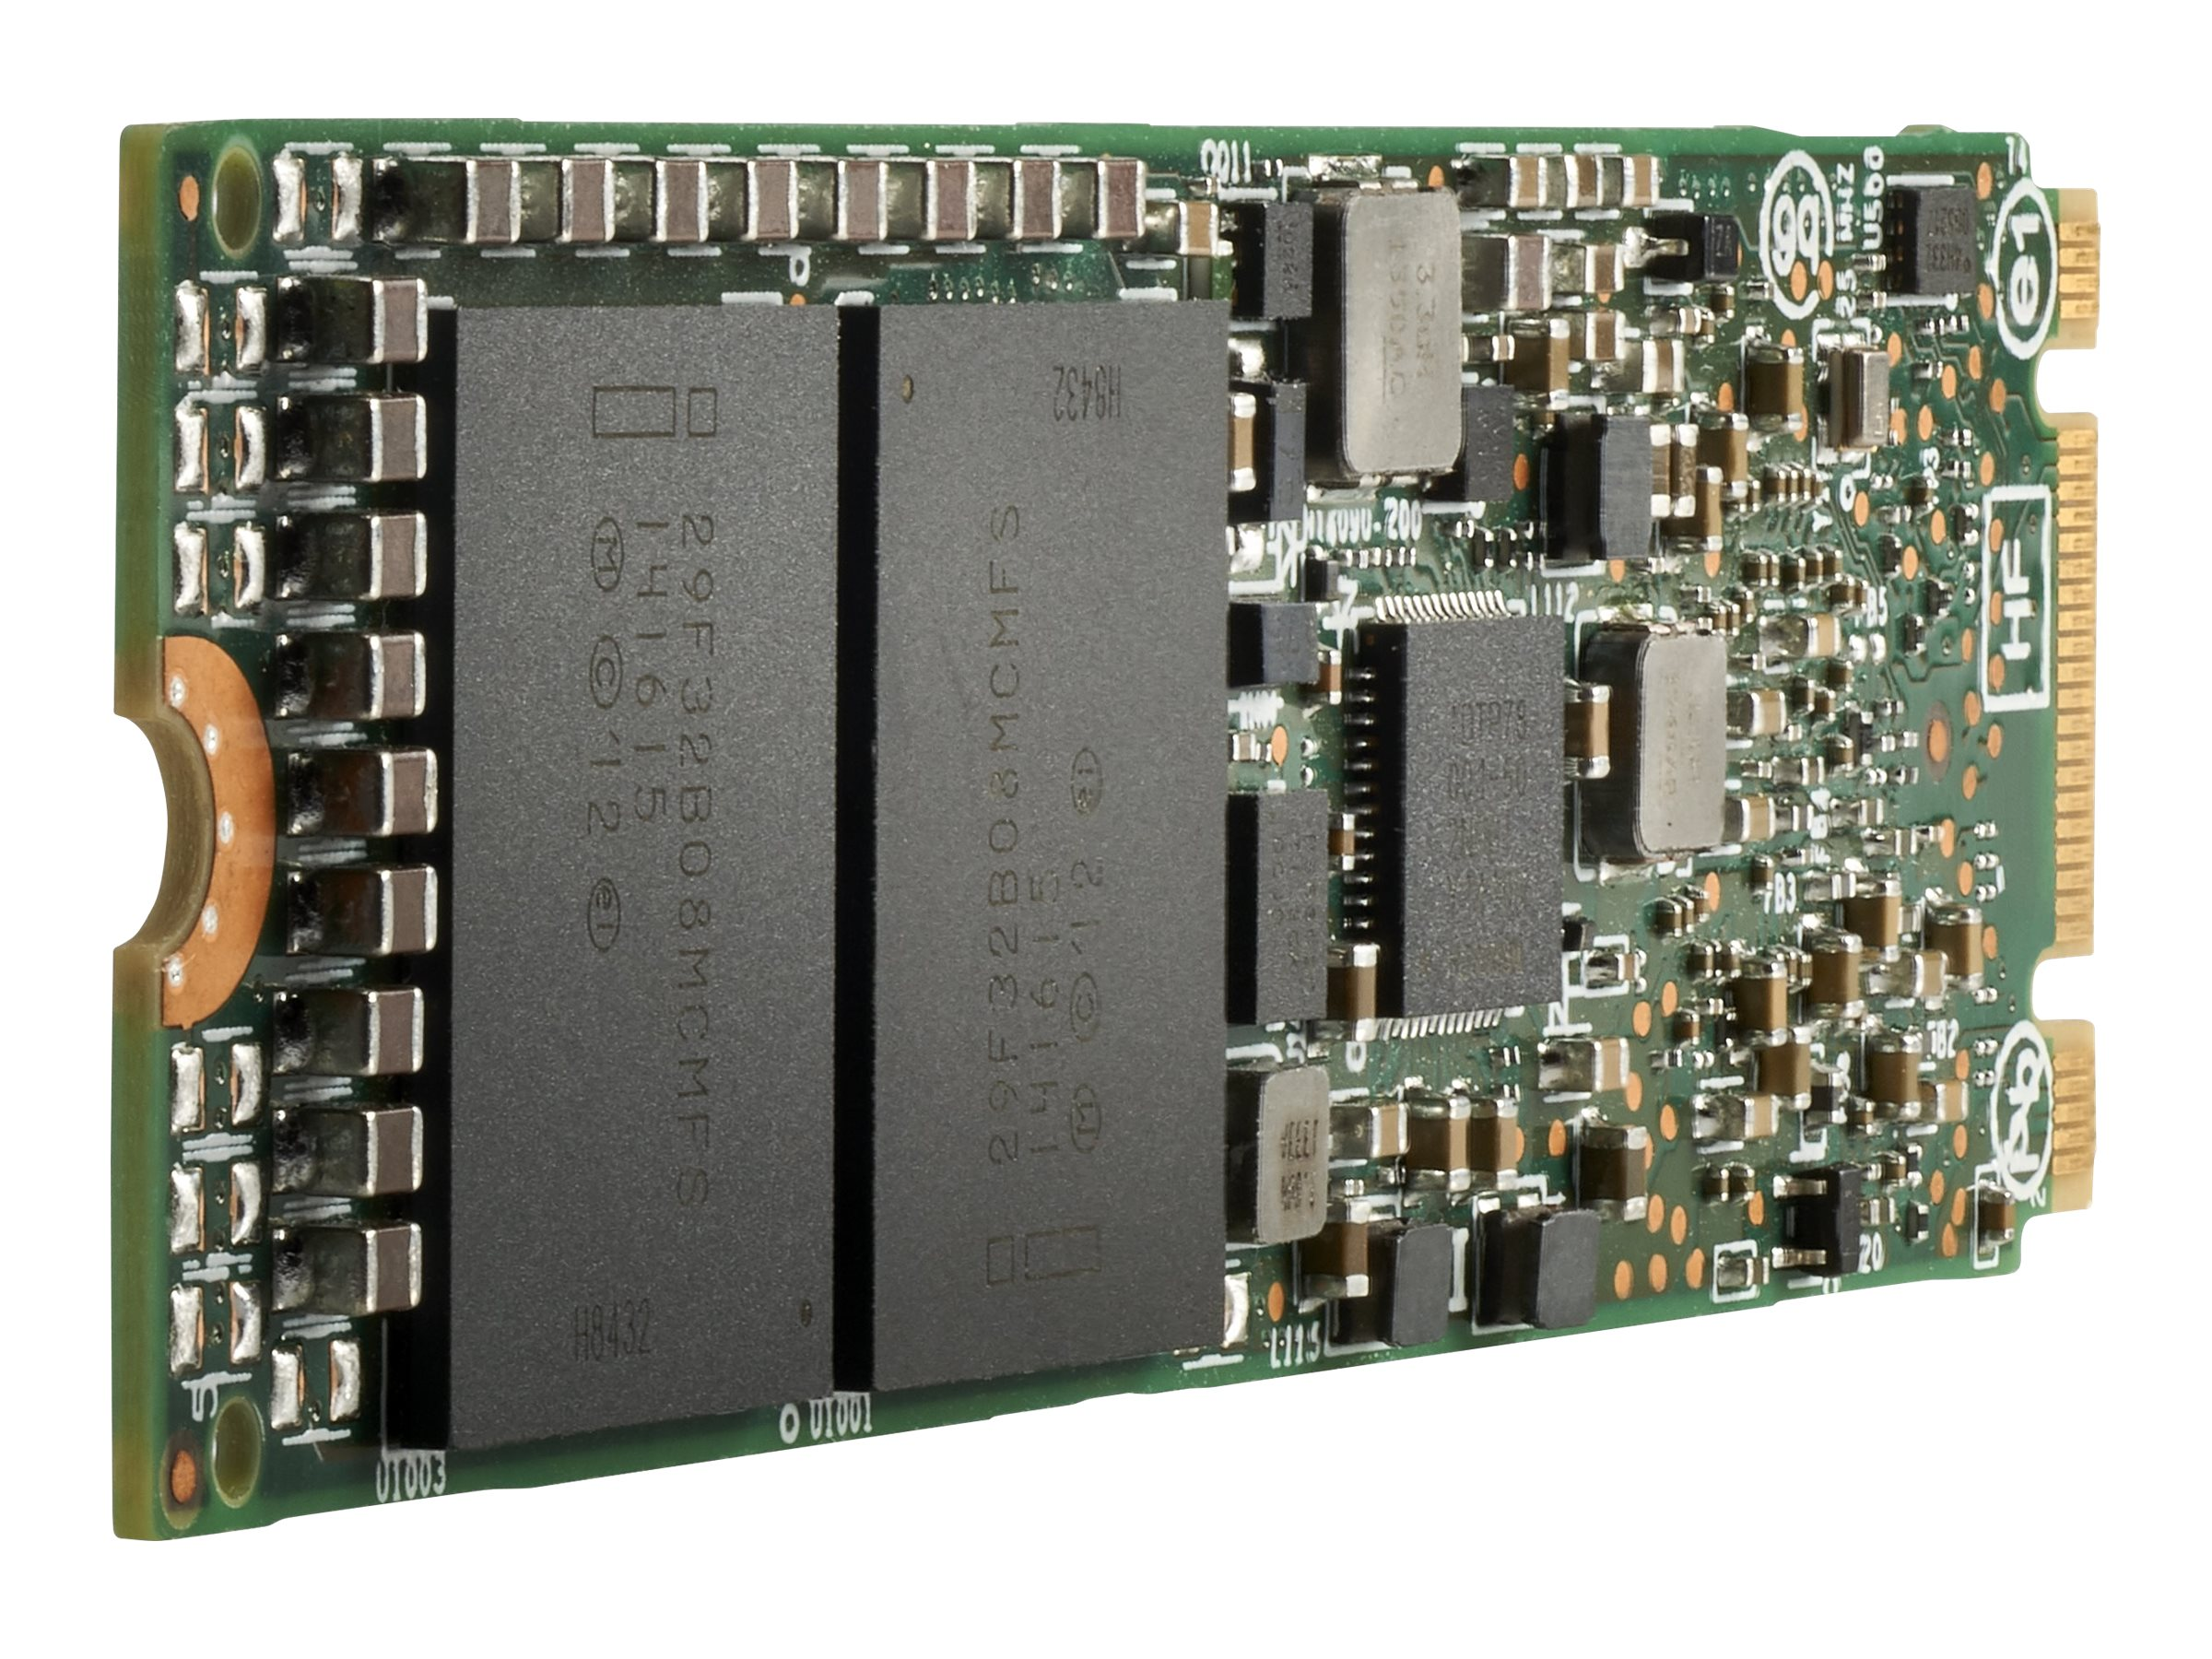 HPE Read Intensive - Solid-State-Disk - 3.84 TB - intern - M.2 22110 - PCI Express x4 (NVMe)